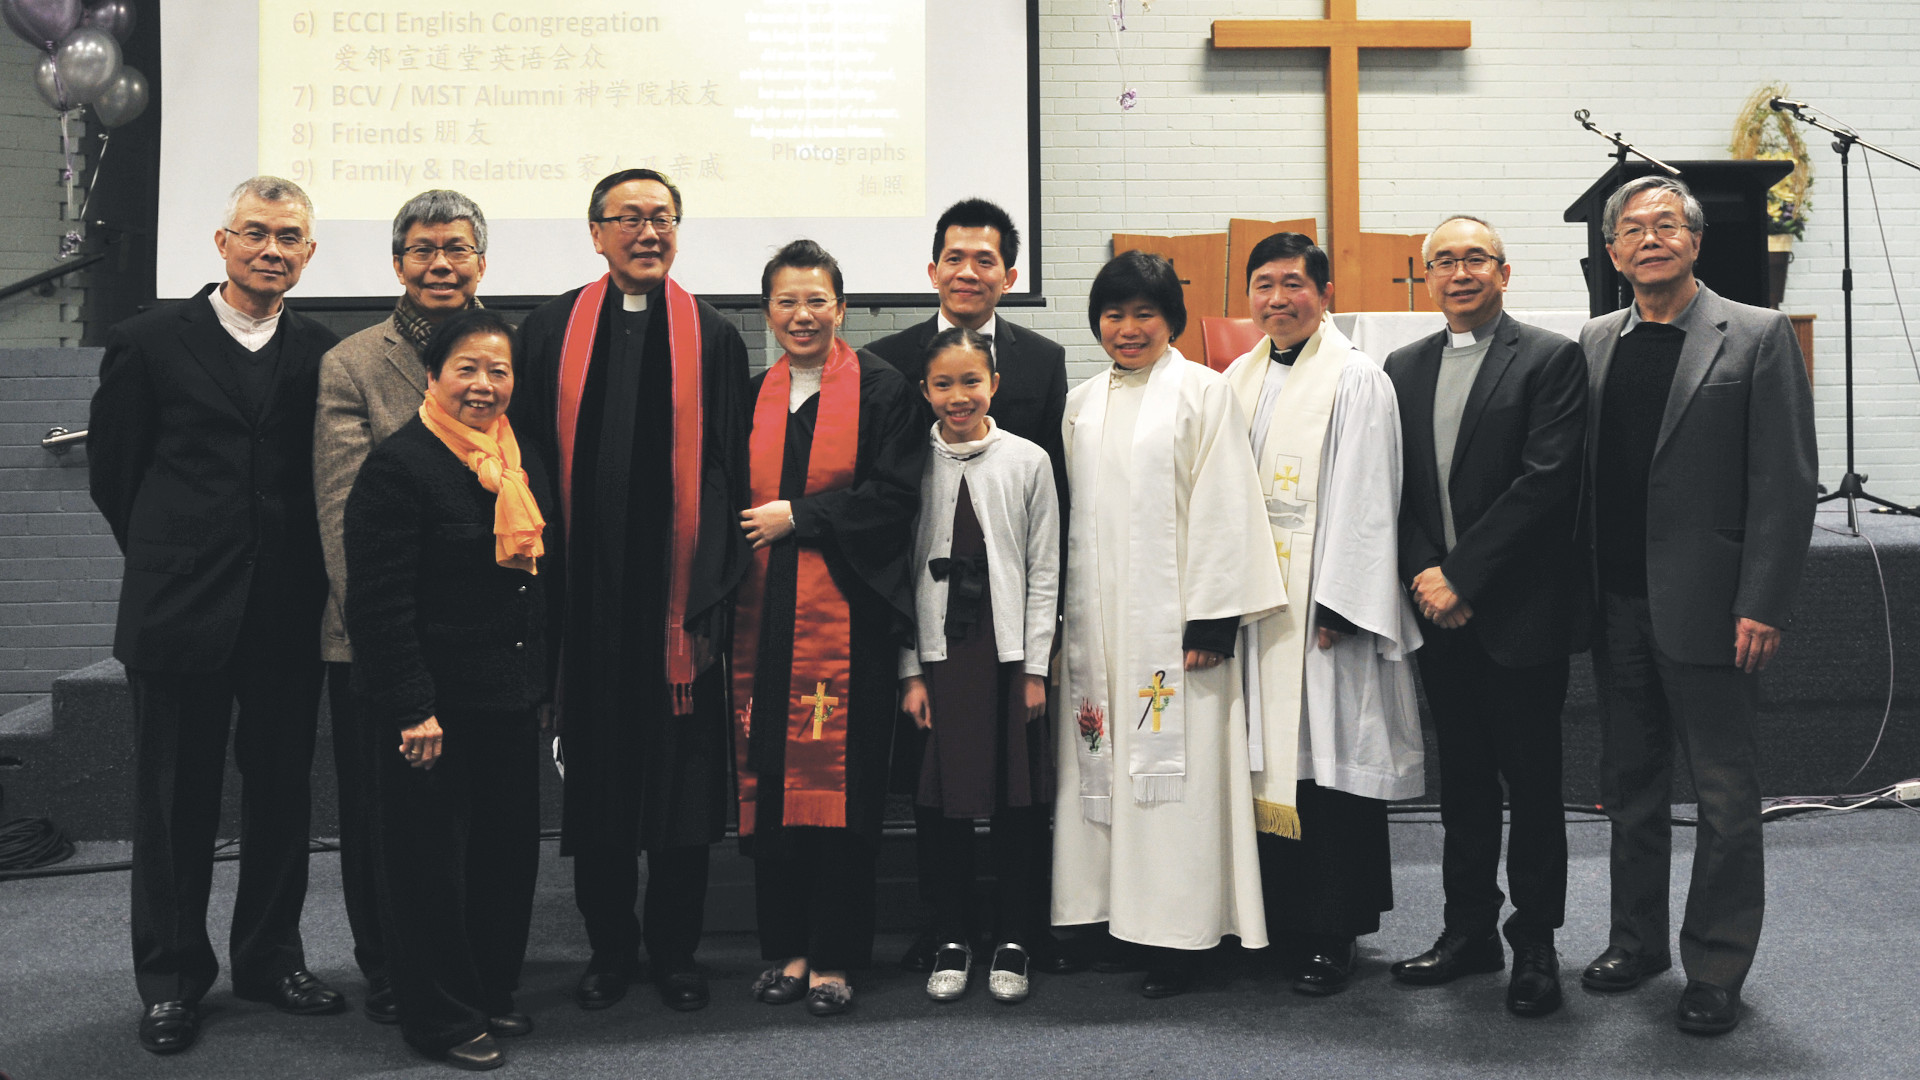 Rev Dorcas surrounded by family and MST Chinese staff at her ordination